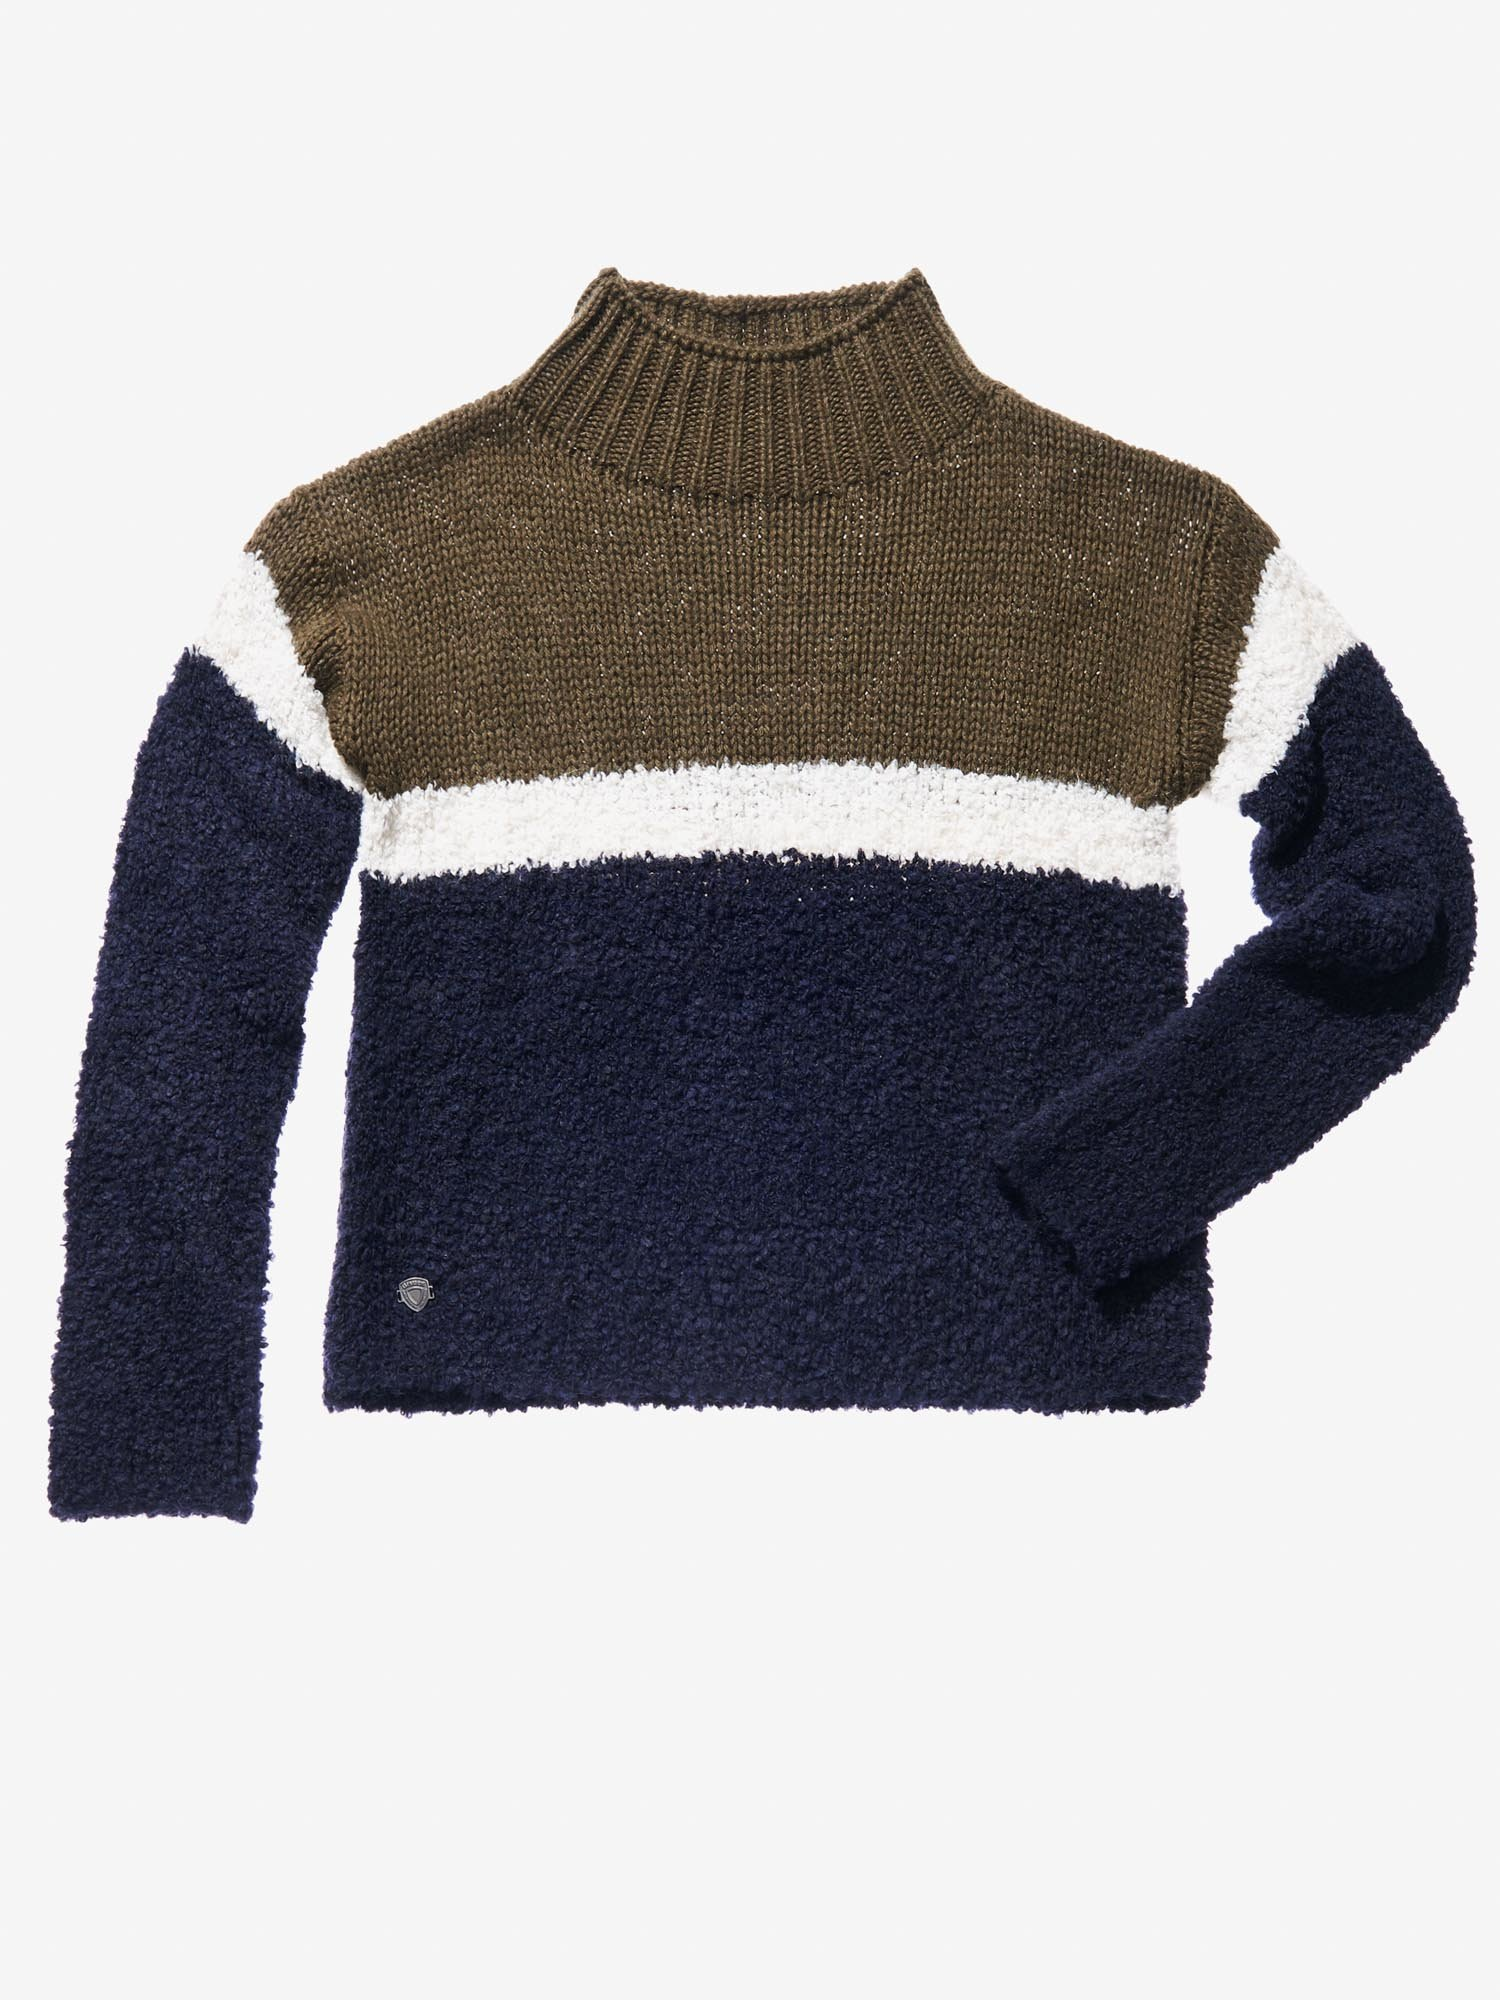 Blauer - STRIPED TURTLENECK - Baltic Sea - Blauer